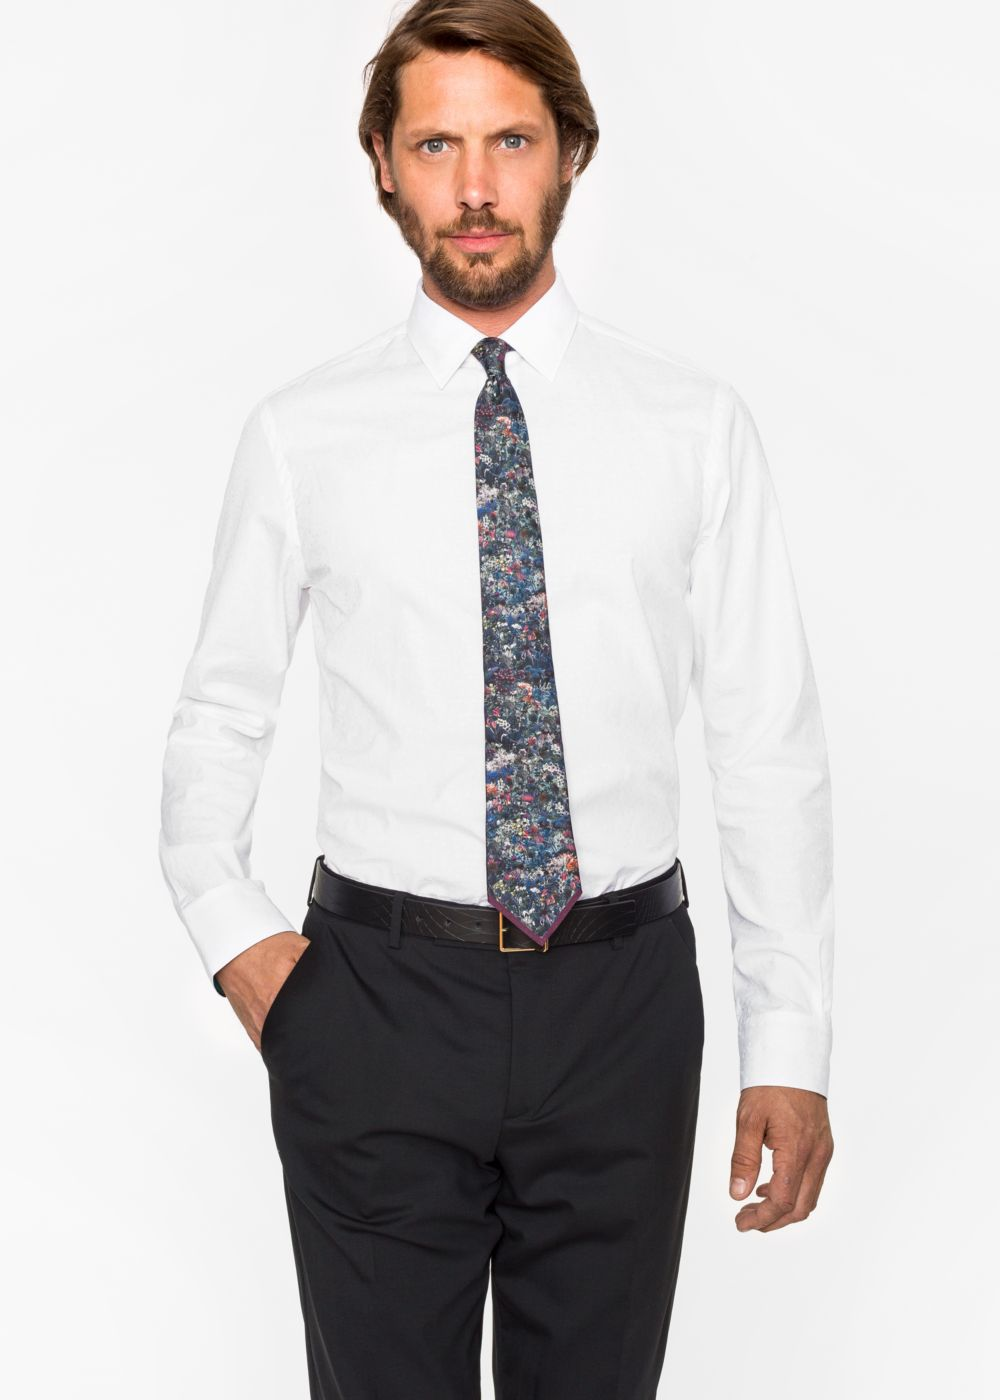 Paul Smith Men's Tailored-Fit White Floral Jacquard Cotton Shirt With 'Artist Stripe' Cuff Lining